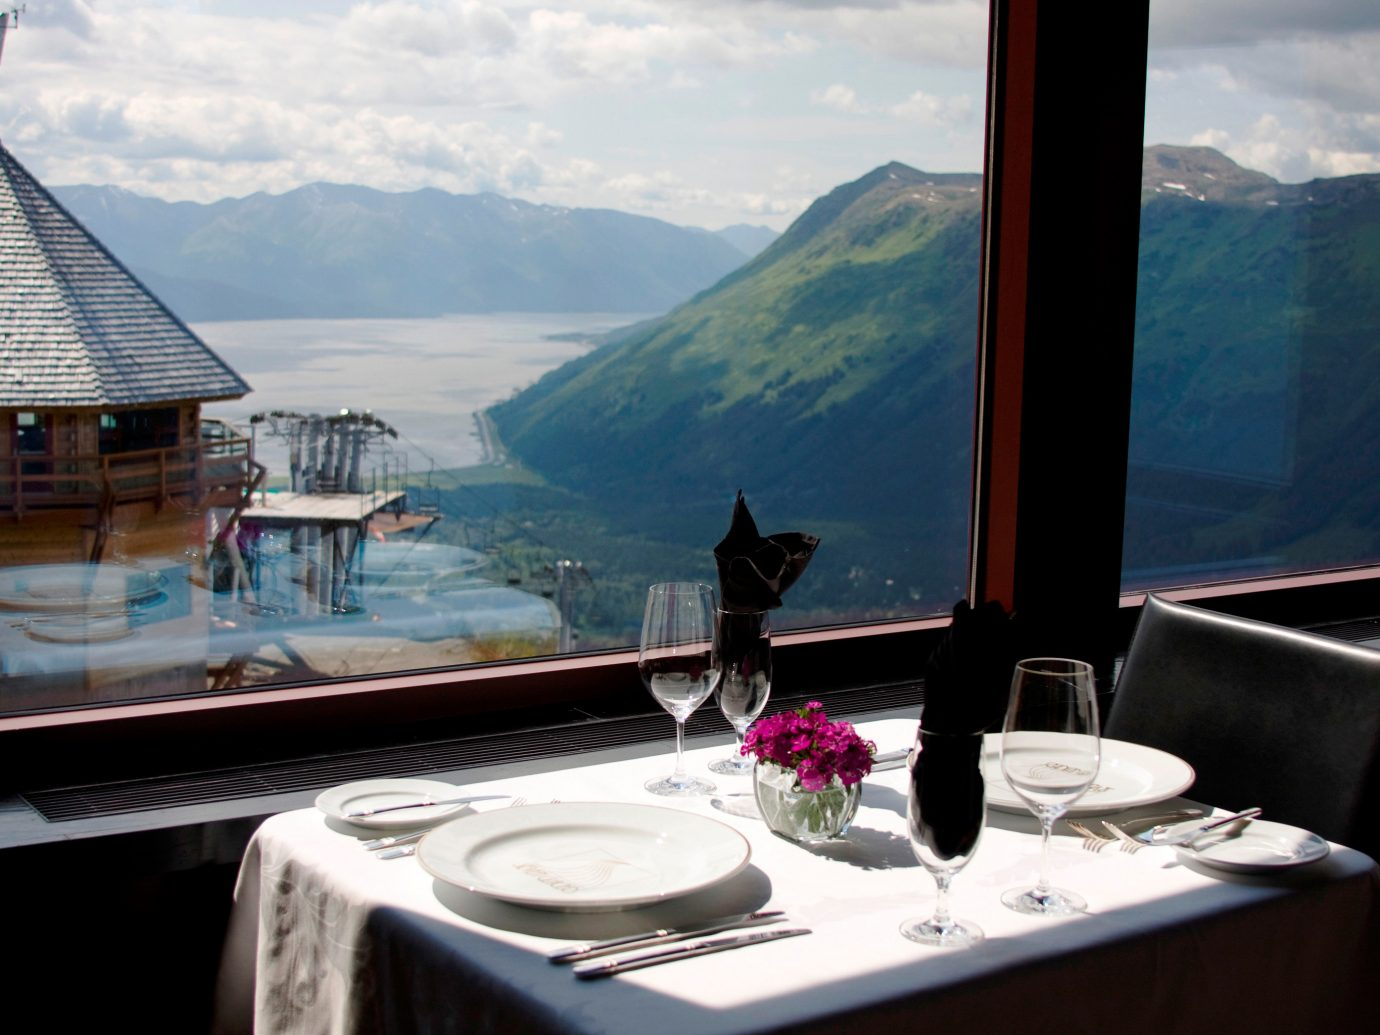 Bar Dining Drink Eat Hotels Lakes + Rivers Mountains Scenic views Trip Ideas Waterfront mountain sky room house vacation passenger ship yacht Boat estate swimming pool home restaurant interior design vehicle luxury yacht overlooking